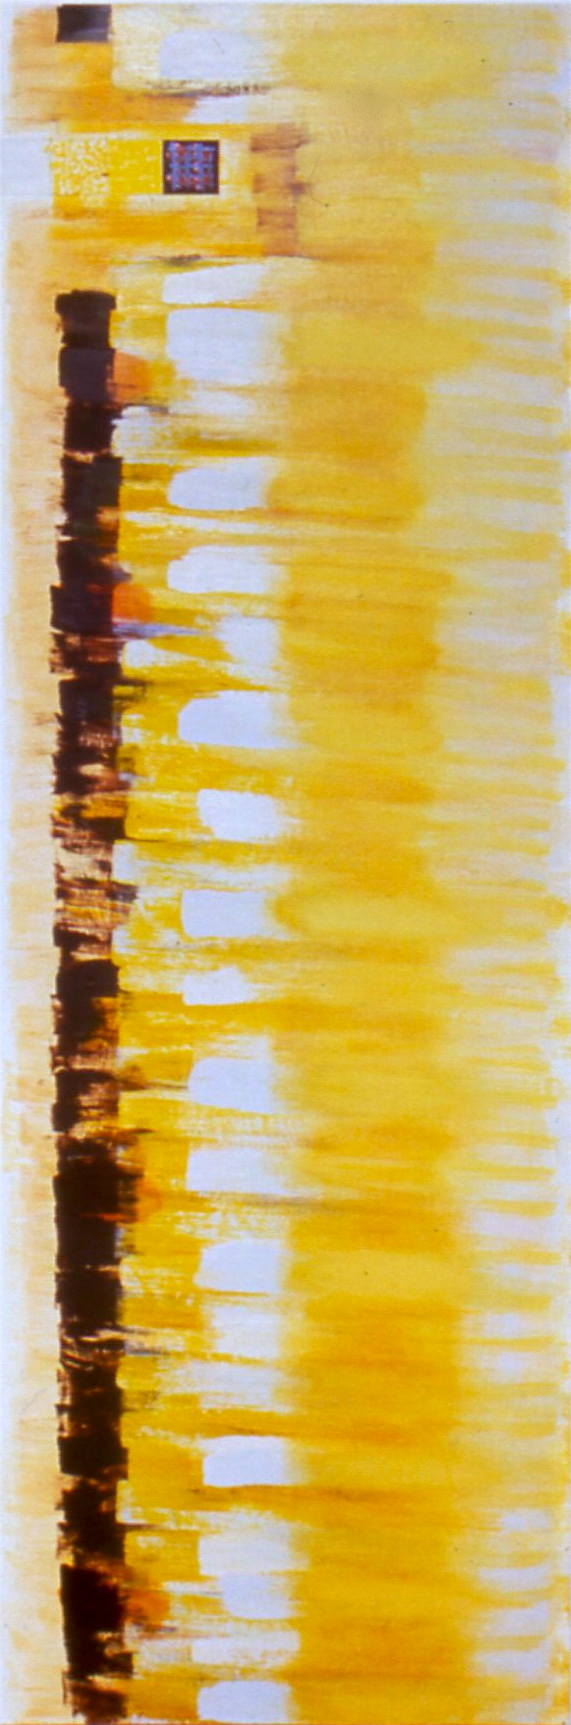 "More Than One Thing, 1998, oil on linen, 70 1/2""x23""x2"""